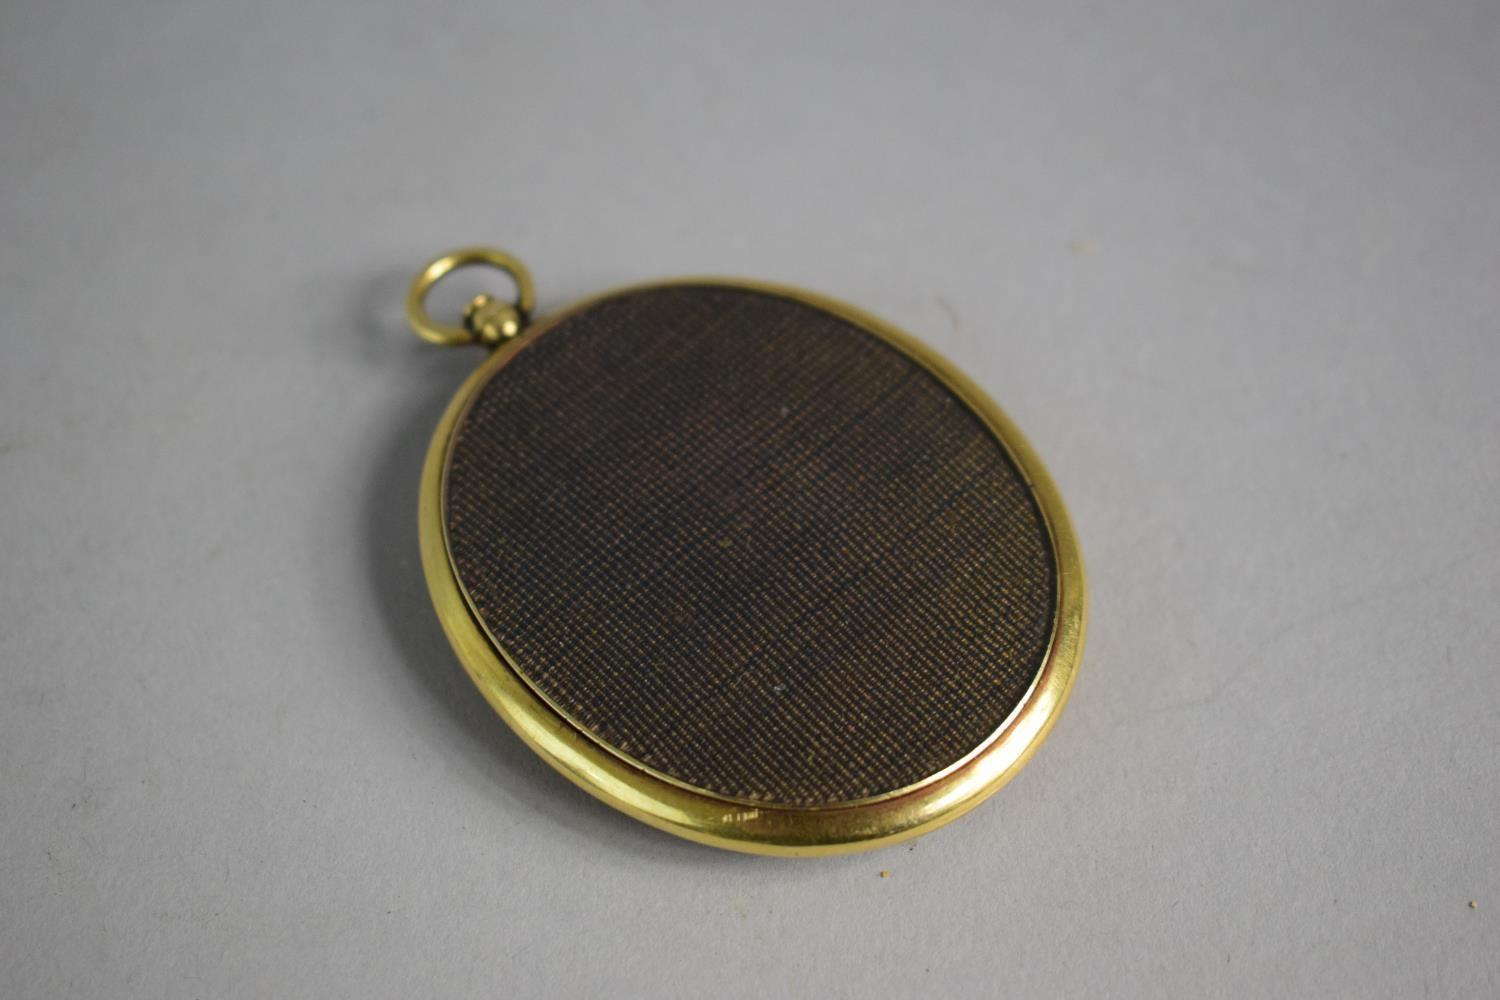 Lot 327 - A 19th Century Gold Framed Mourning Pendant with Braided Hair Verso. 6cms High